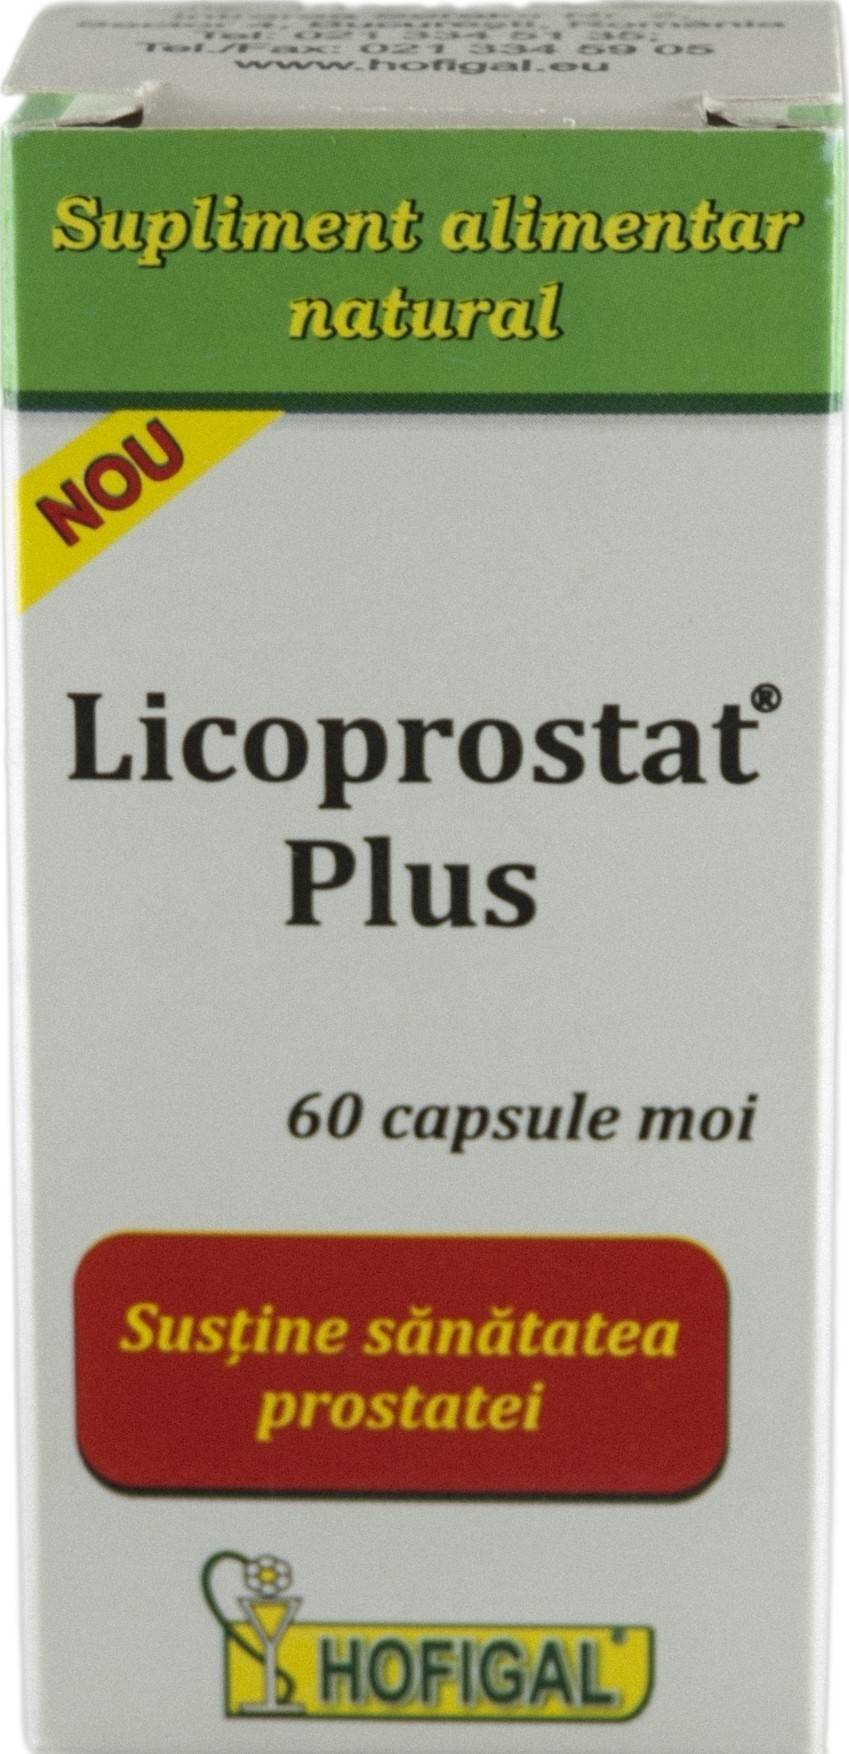 licoprostat plus 60 cps hofigal